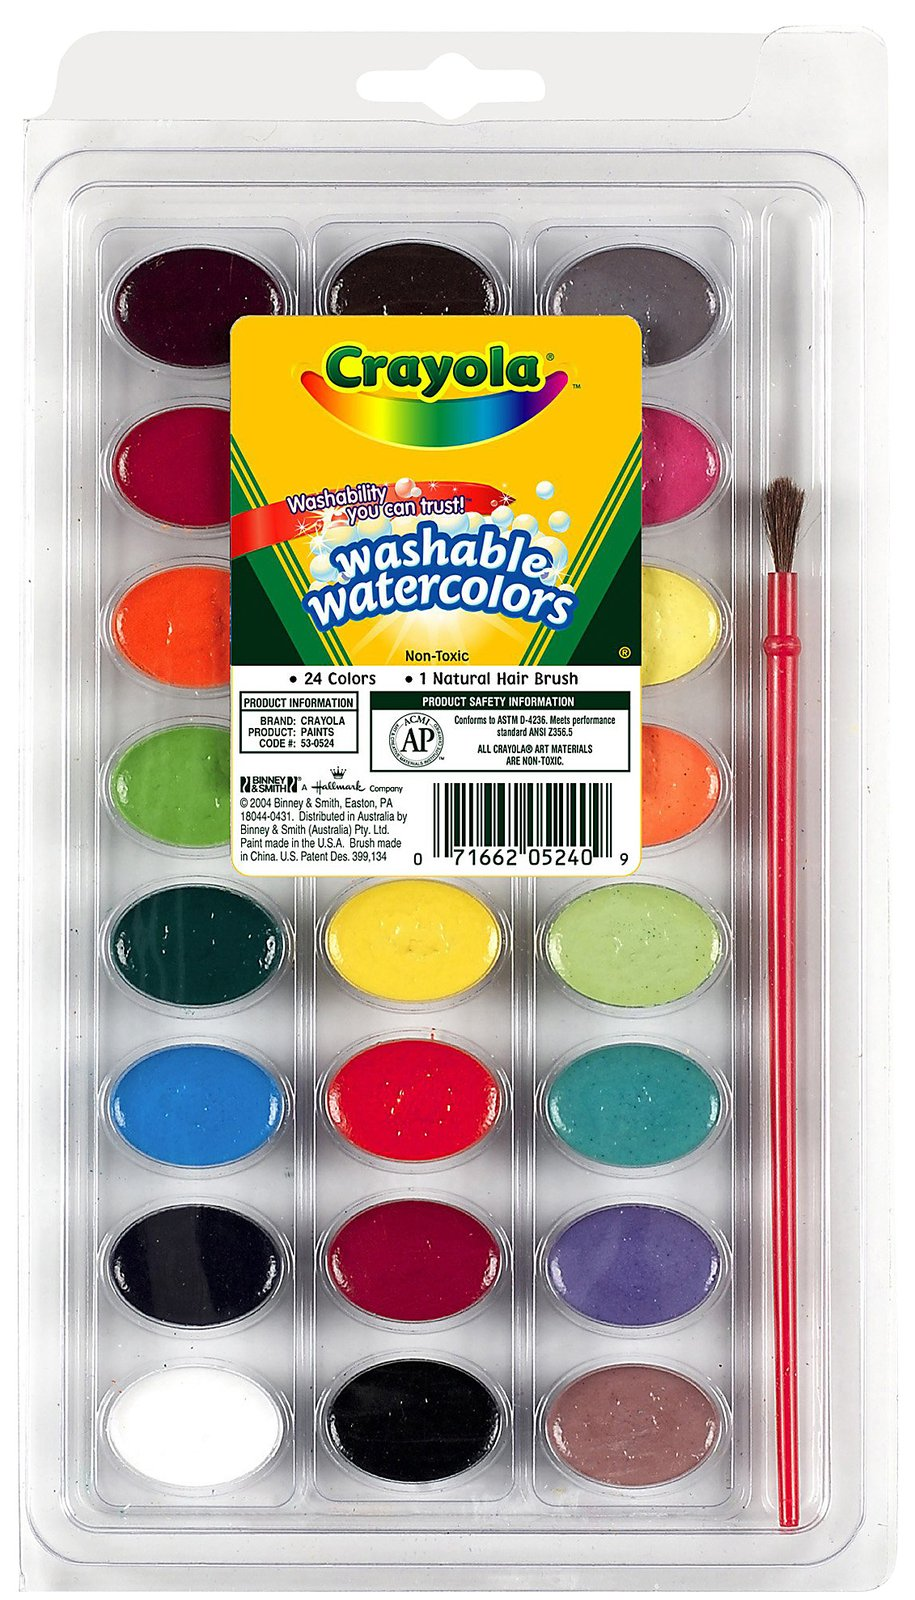 Crayola 24 Ct. Pan Washable Watercolors - 1 ct.